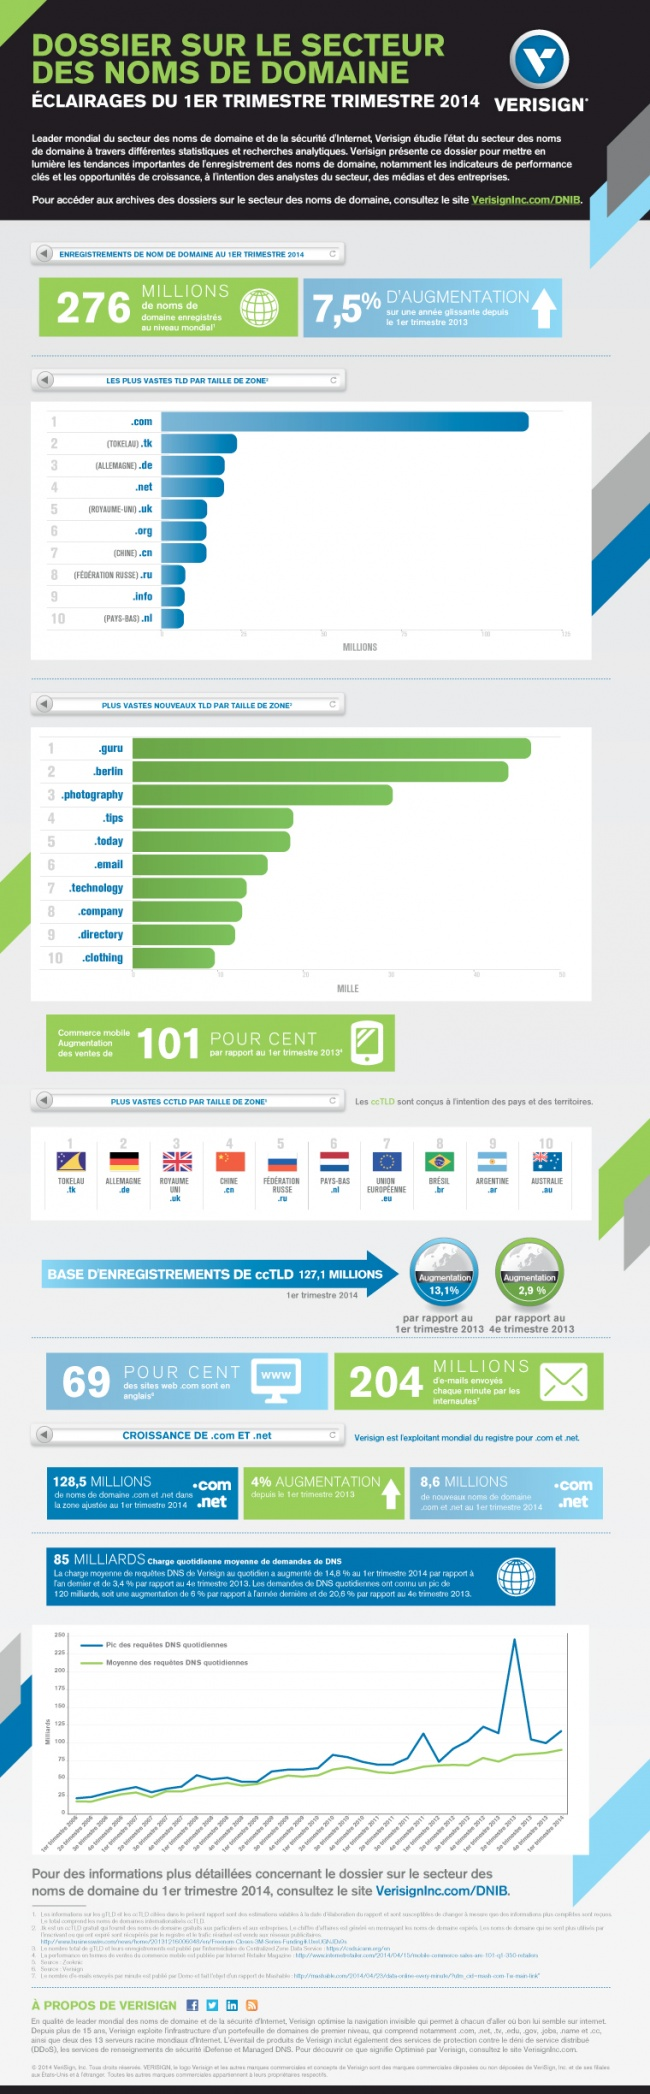 Infographie_Verisign_01-09-2014